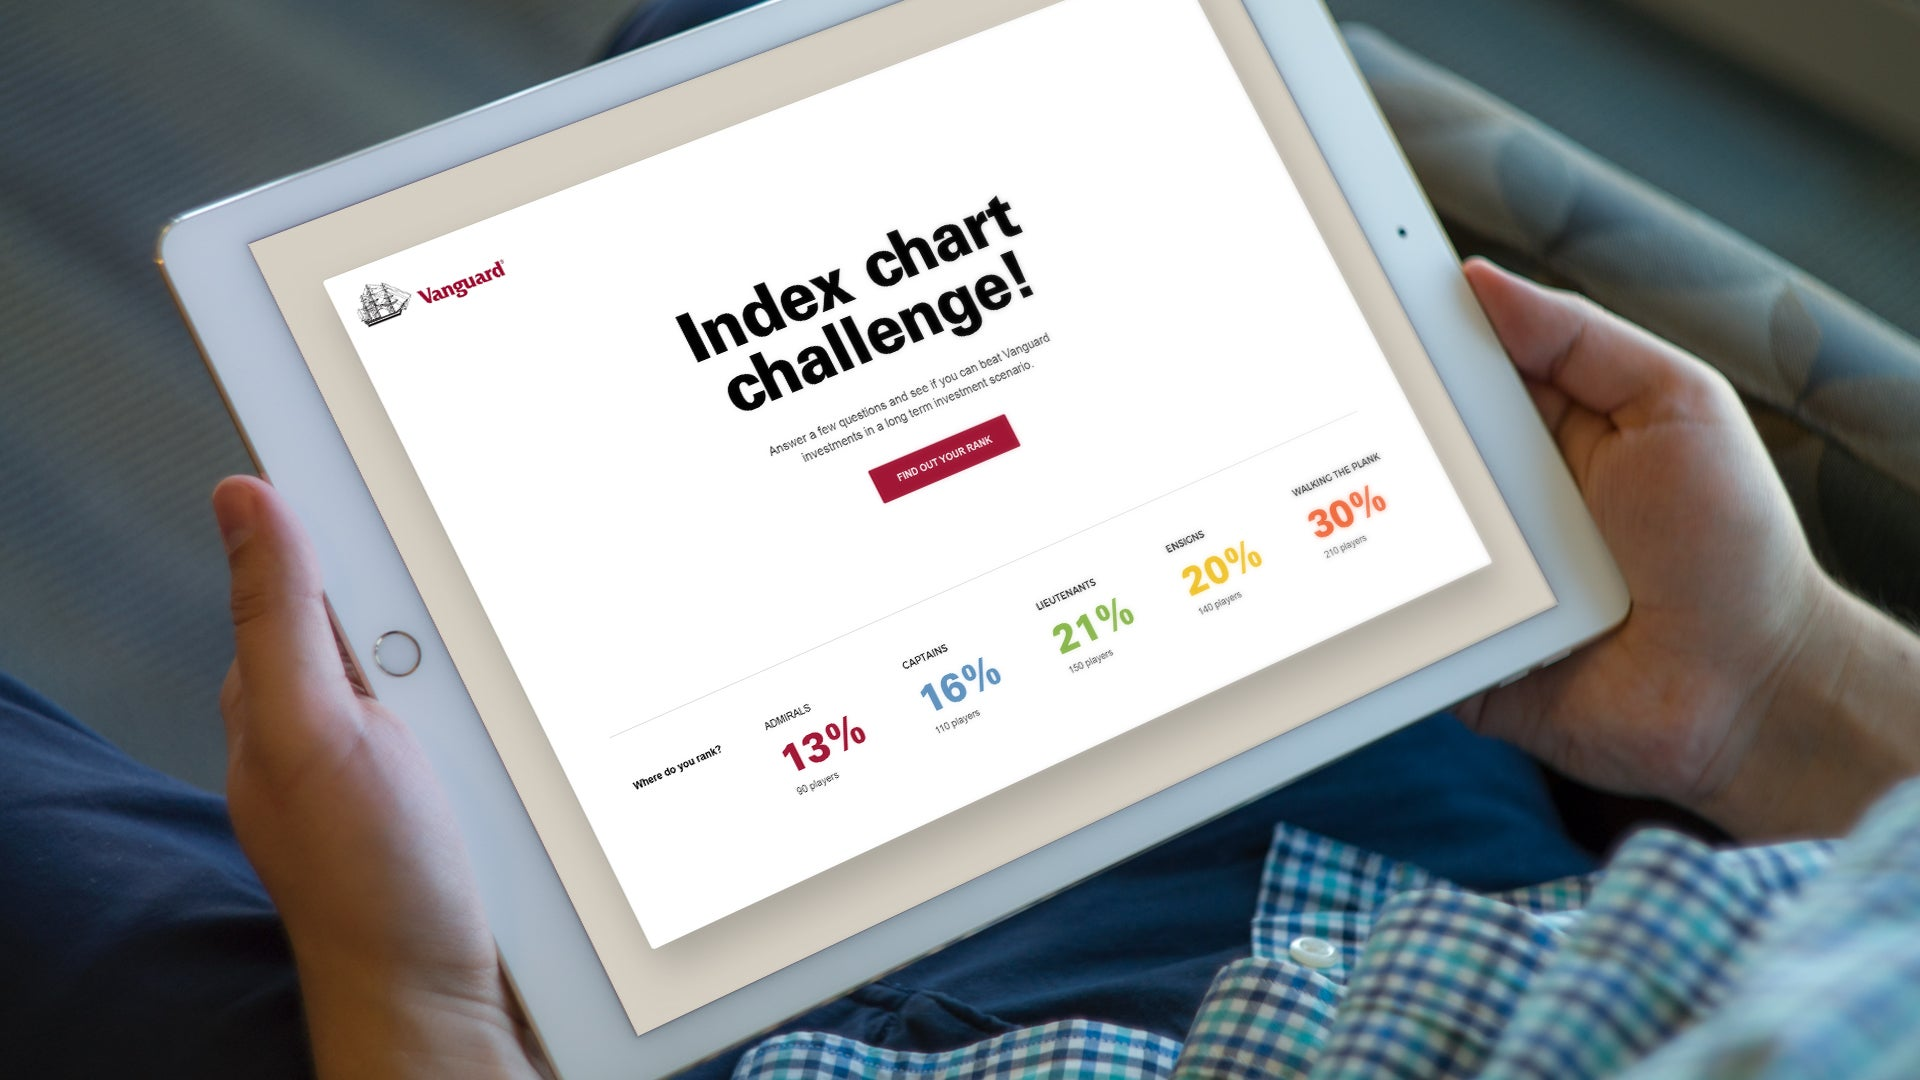 Vanguard-index-chart-challenge website on a tablet device